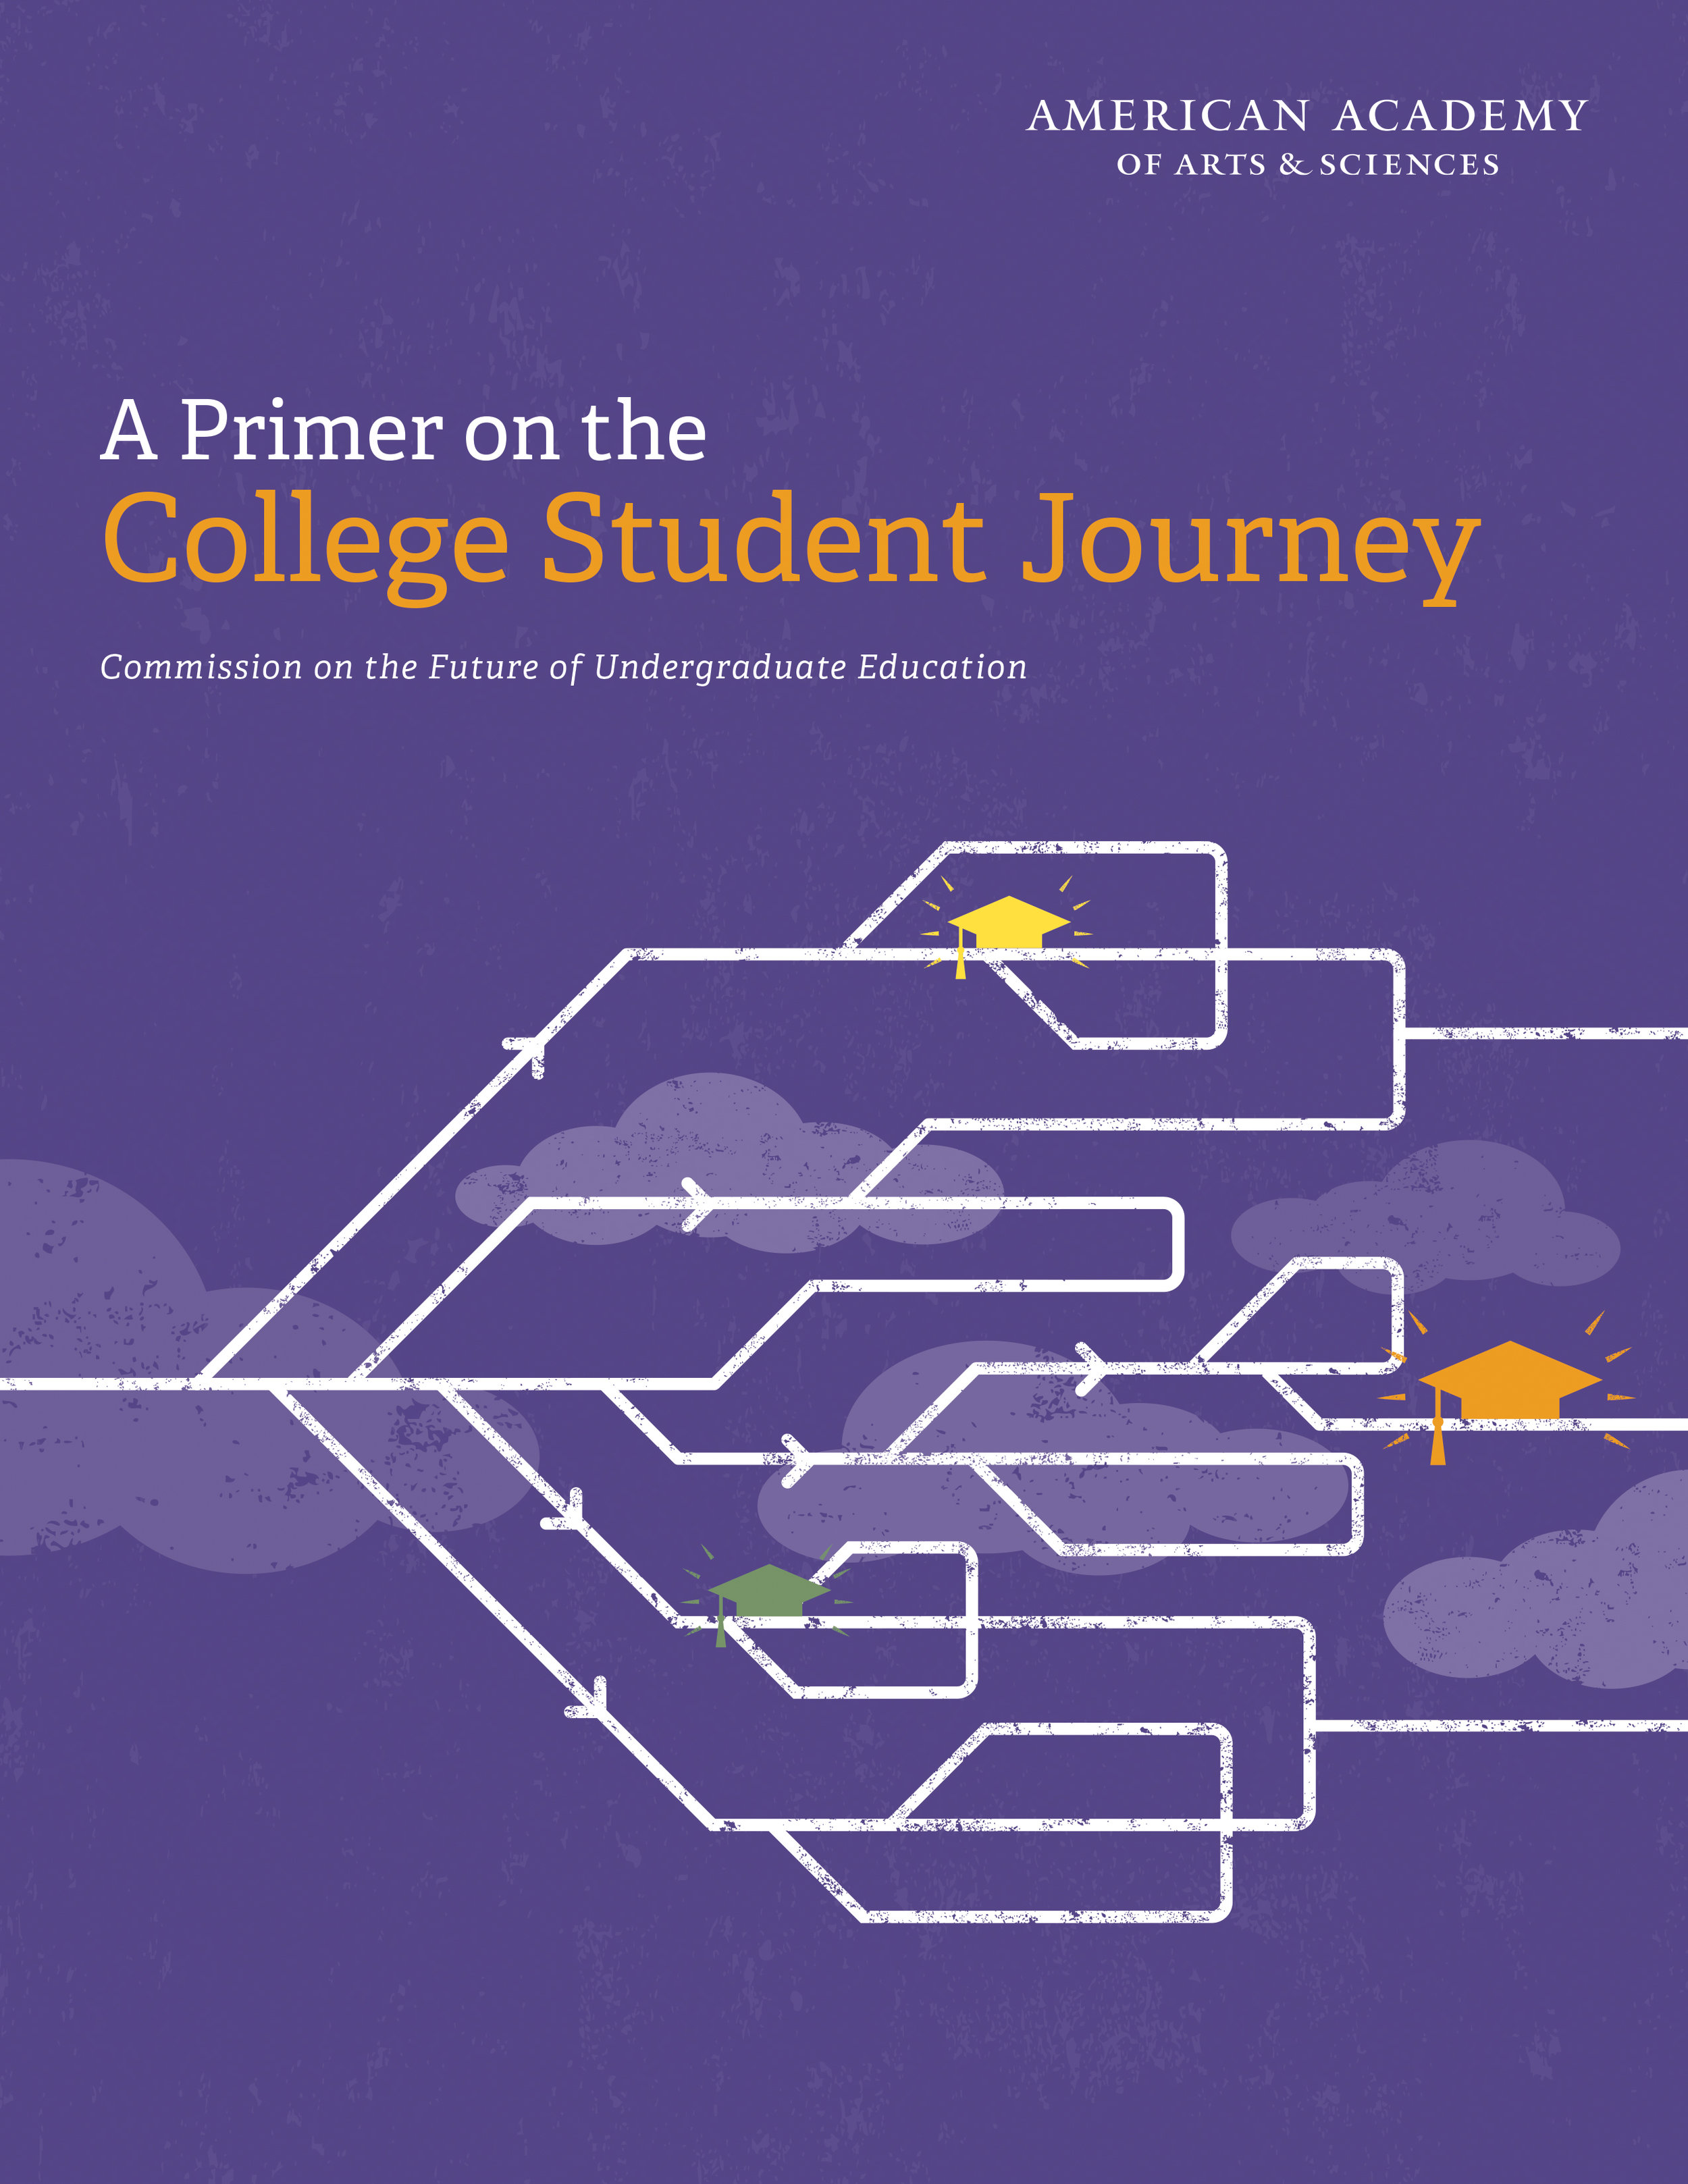 A Primer on the College Student Journey